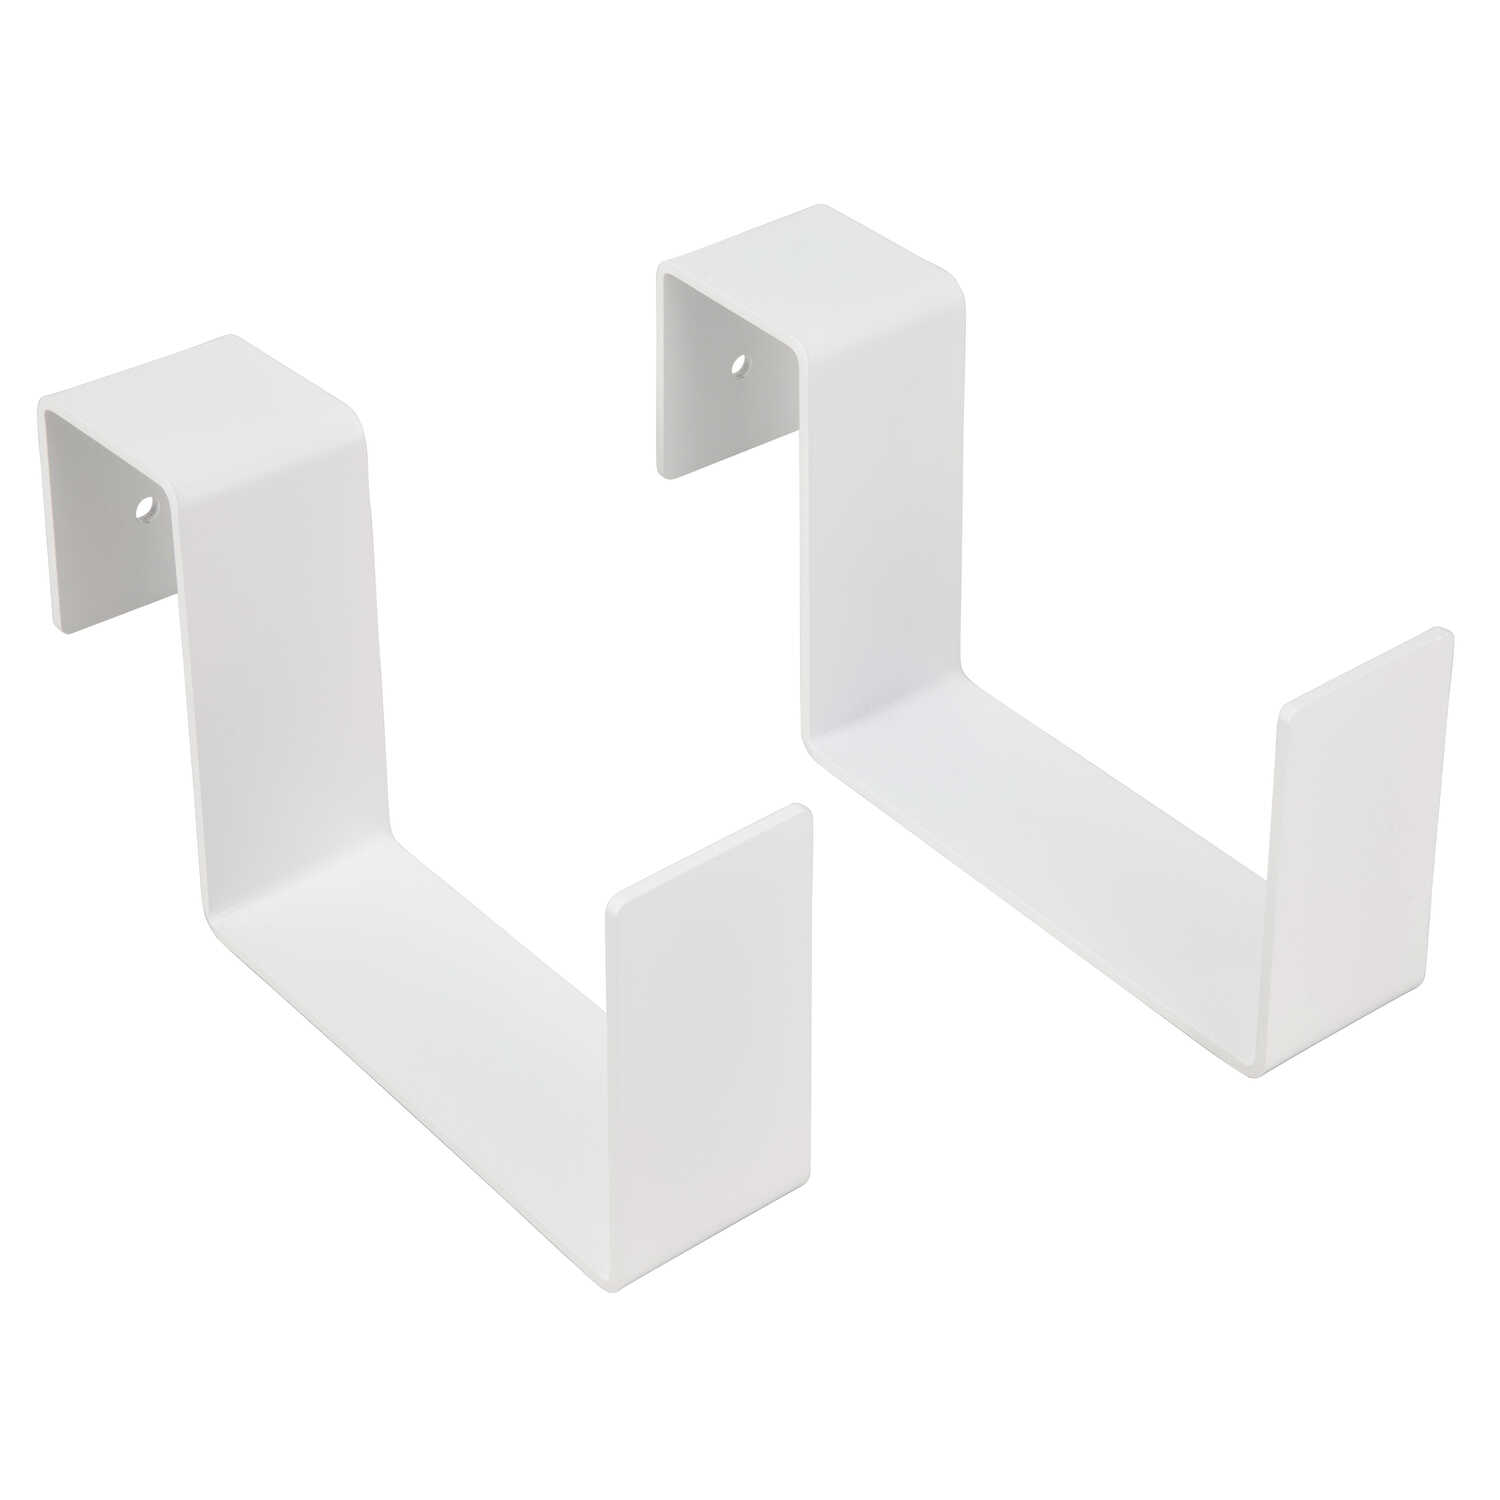 Mide Products  White  Aluminum  4-1/2 in. H Slip-on to Fence/Railing  Plant Hanger  2 pk